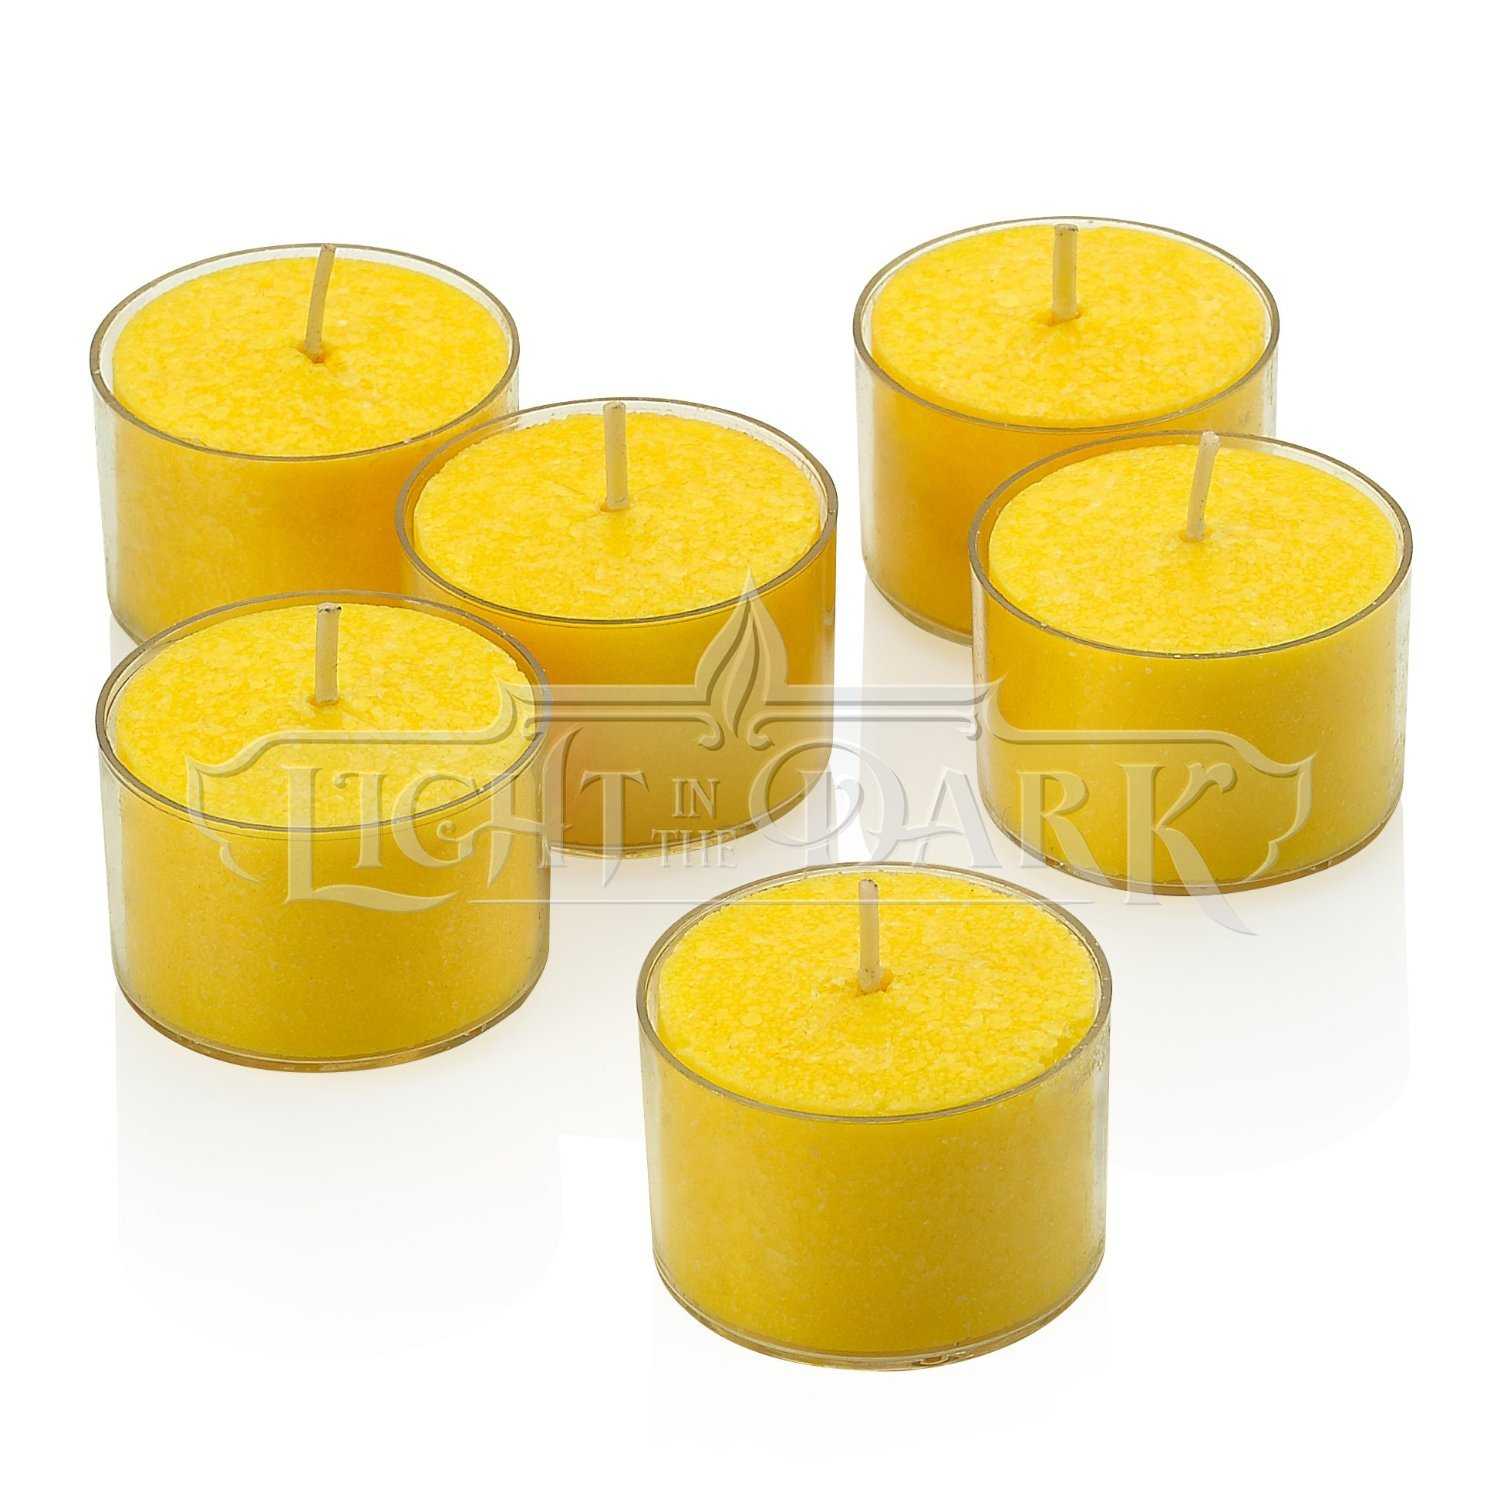 Light In The Dark Set of 36 Yellow Citronella Tealight Candles with Clear Cup Burn 8 Hour - Made from High Scented Citronella to Scare Away Mosquito, Bug and Flies - for Outdoor/Indoor Use by Light In The Dark (Image #2)